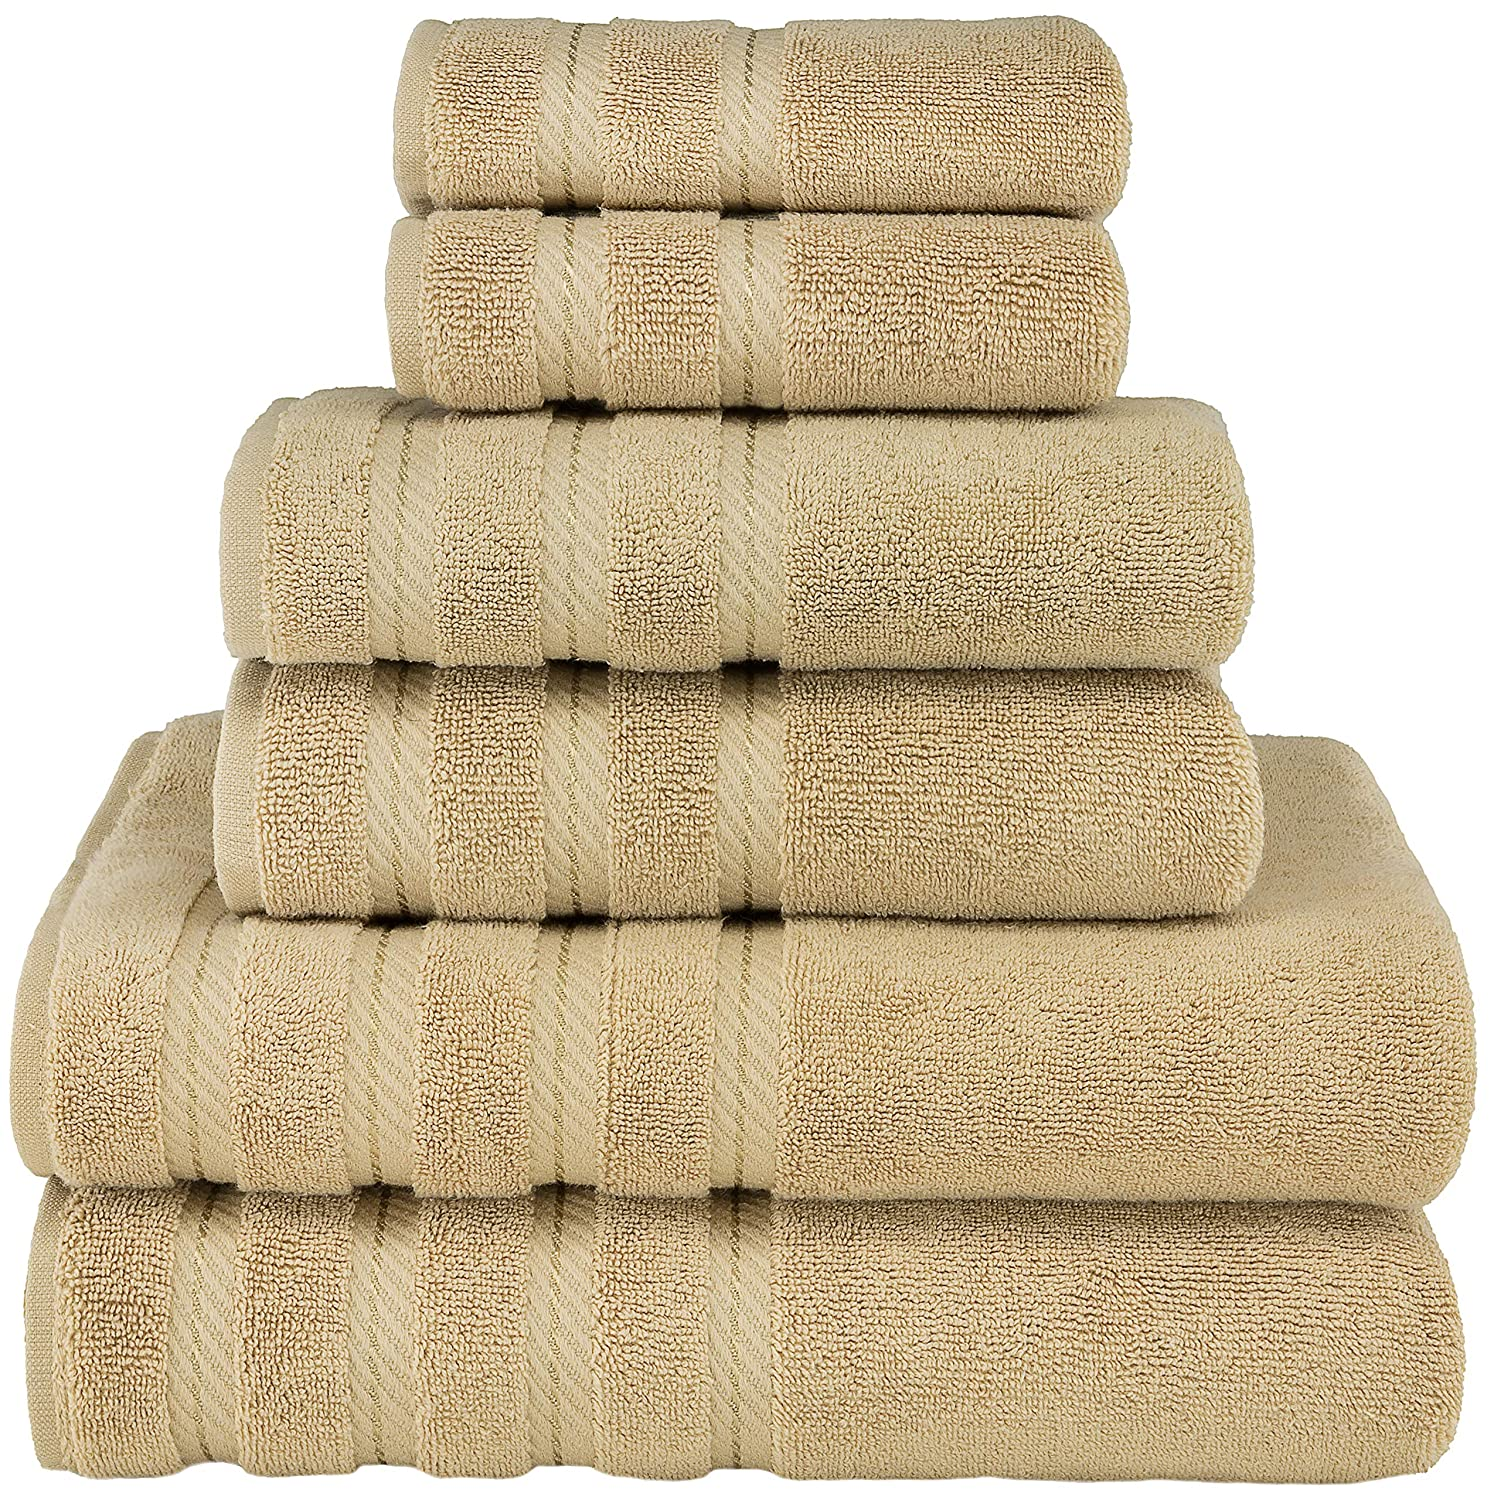 6 Piece Bathroom Turkish Towel Set, Cotton for Maximum Softness